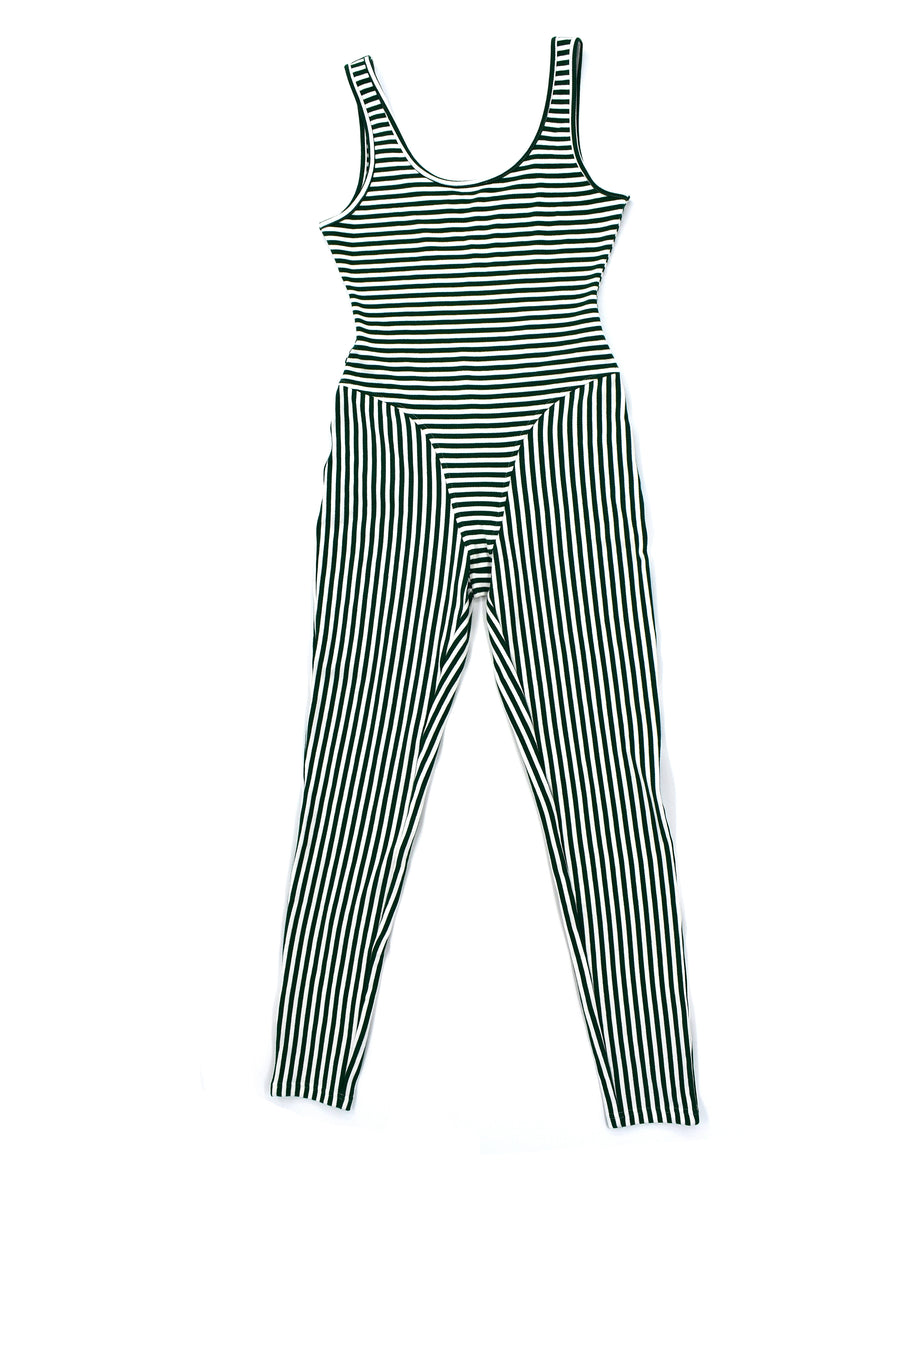 Green/White Striped Jumpsuit